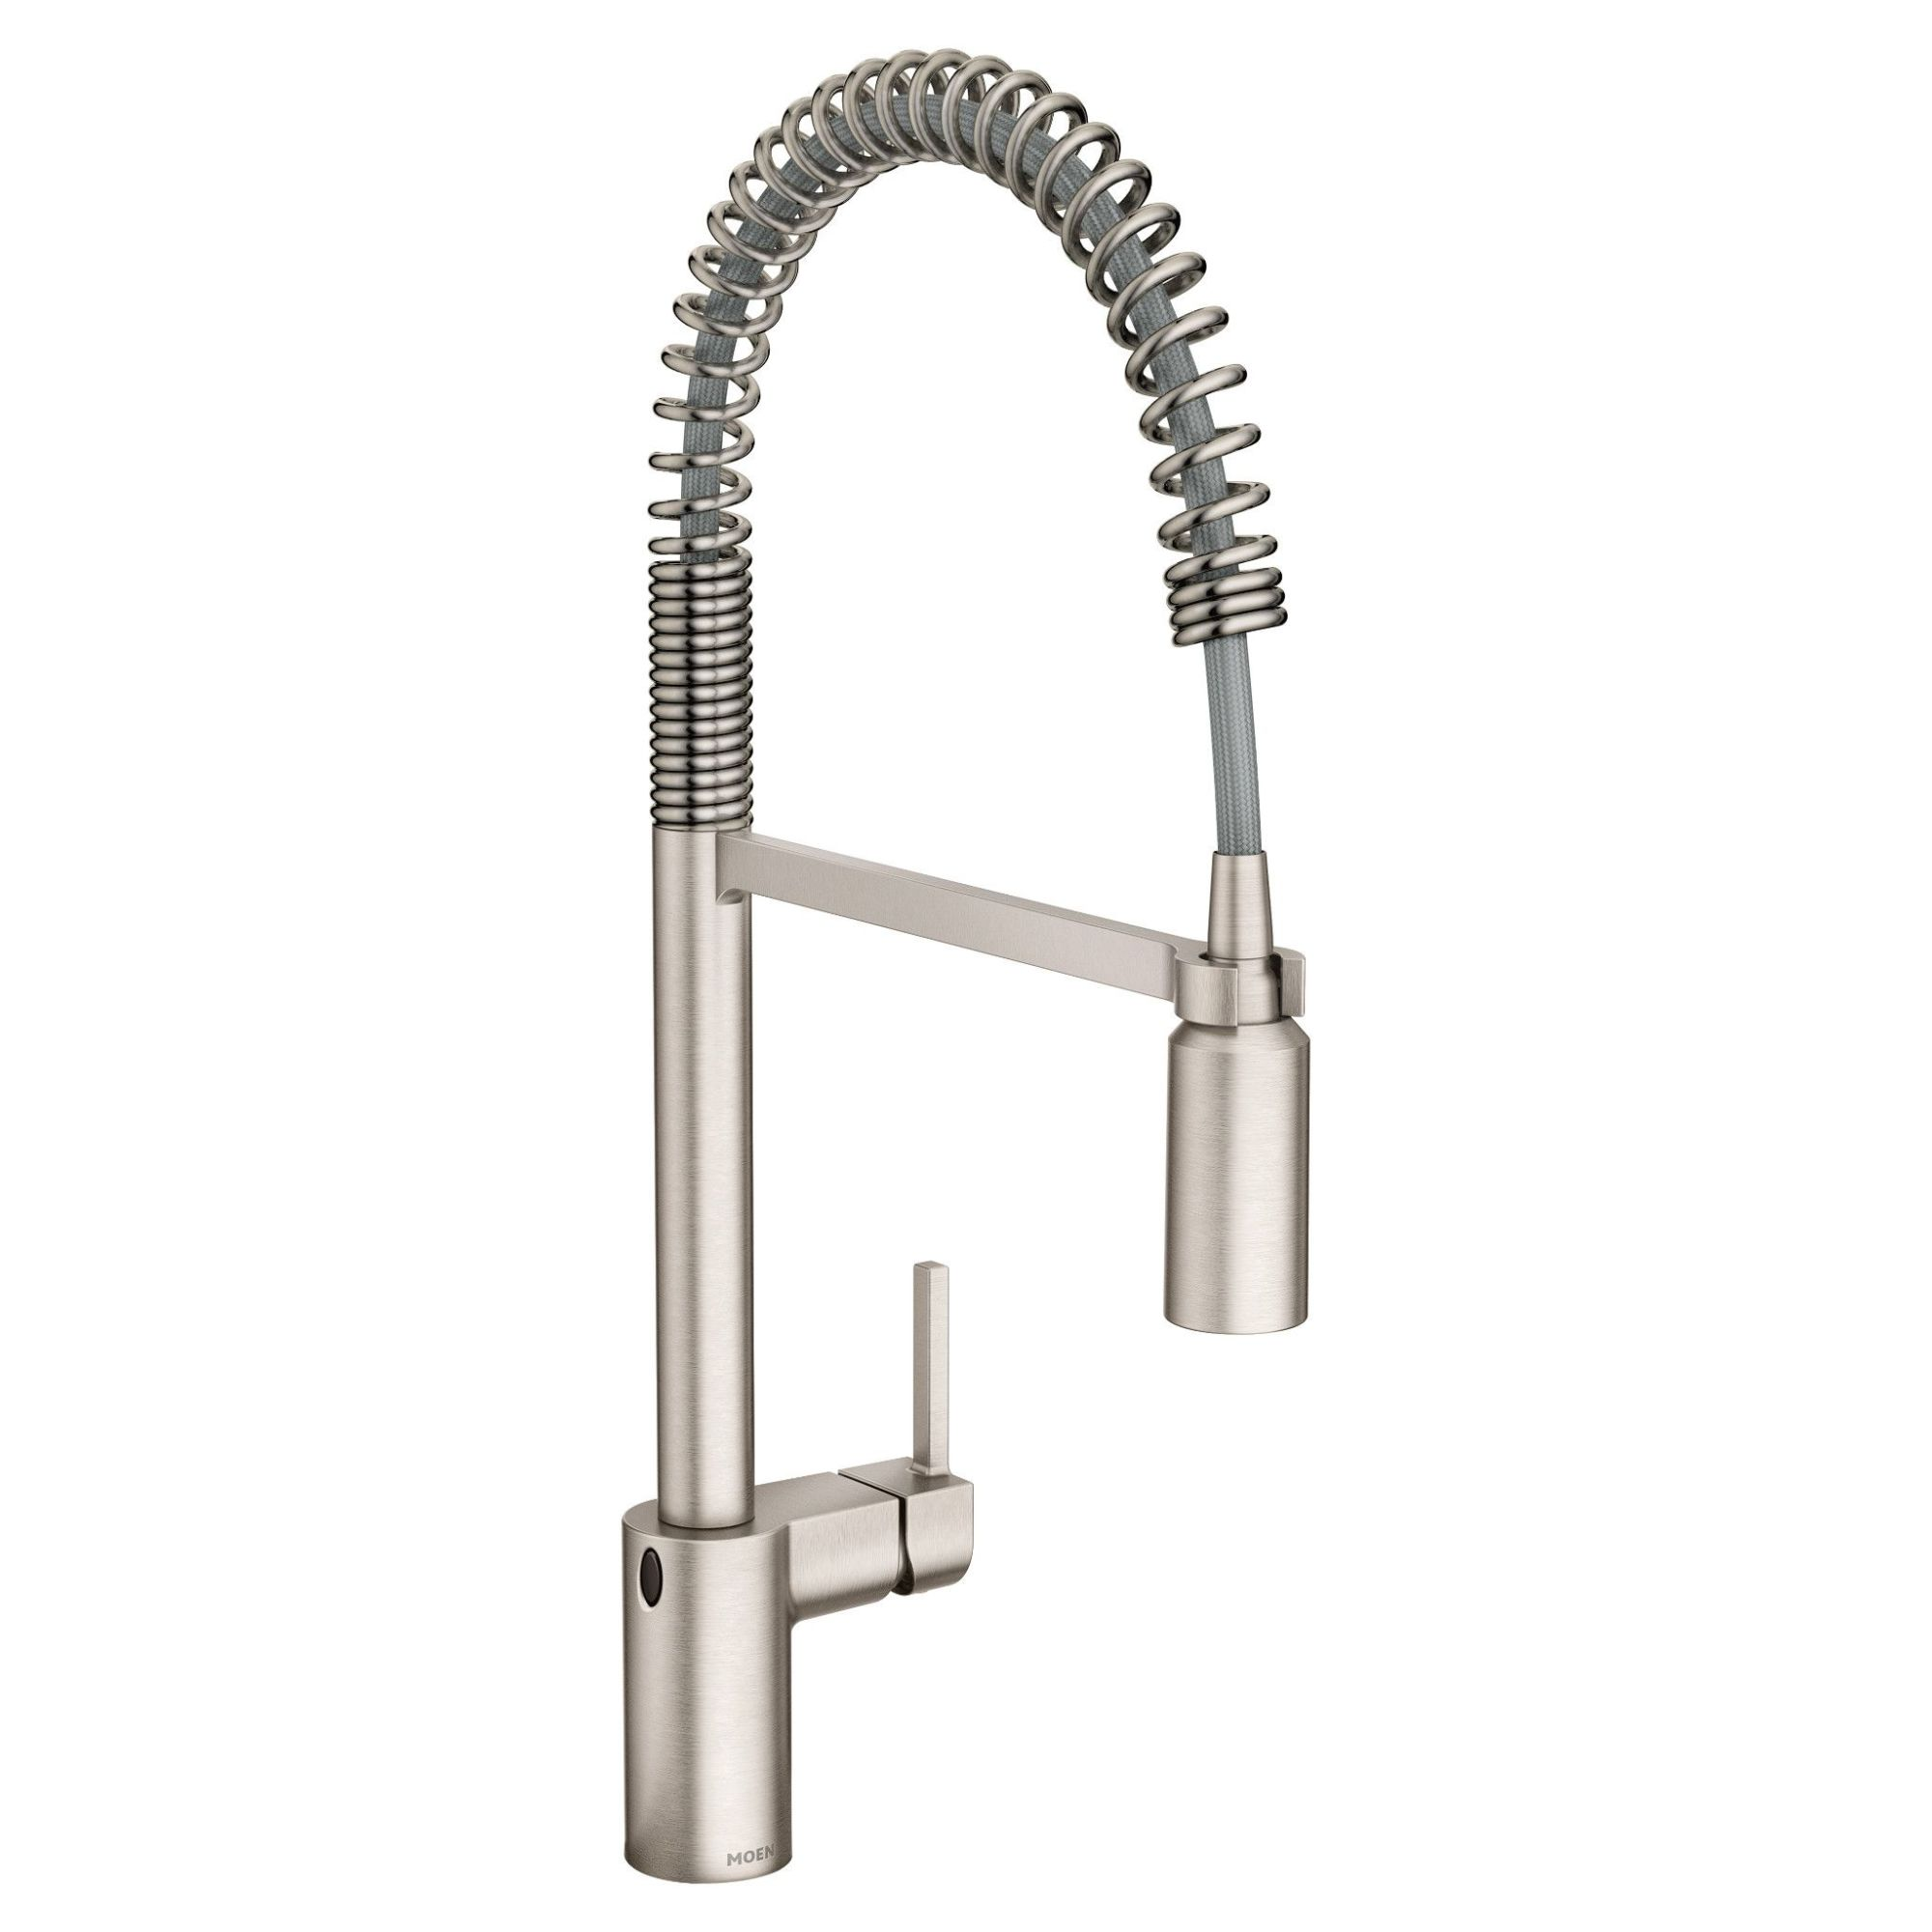 Align Spot resist stainless one-handle high arc pulldown kitchen faucet MOEN-5923EWSRS